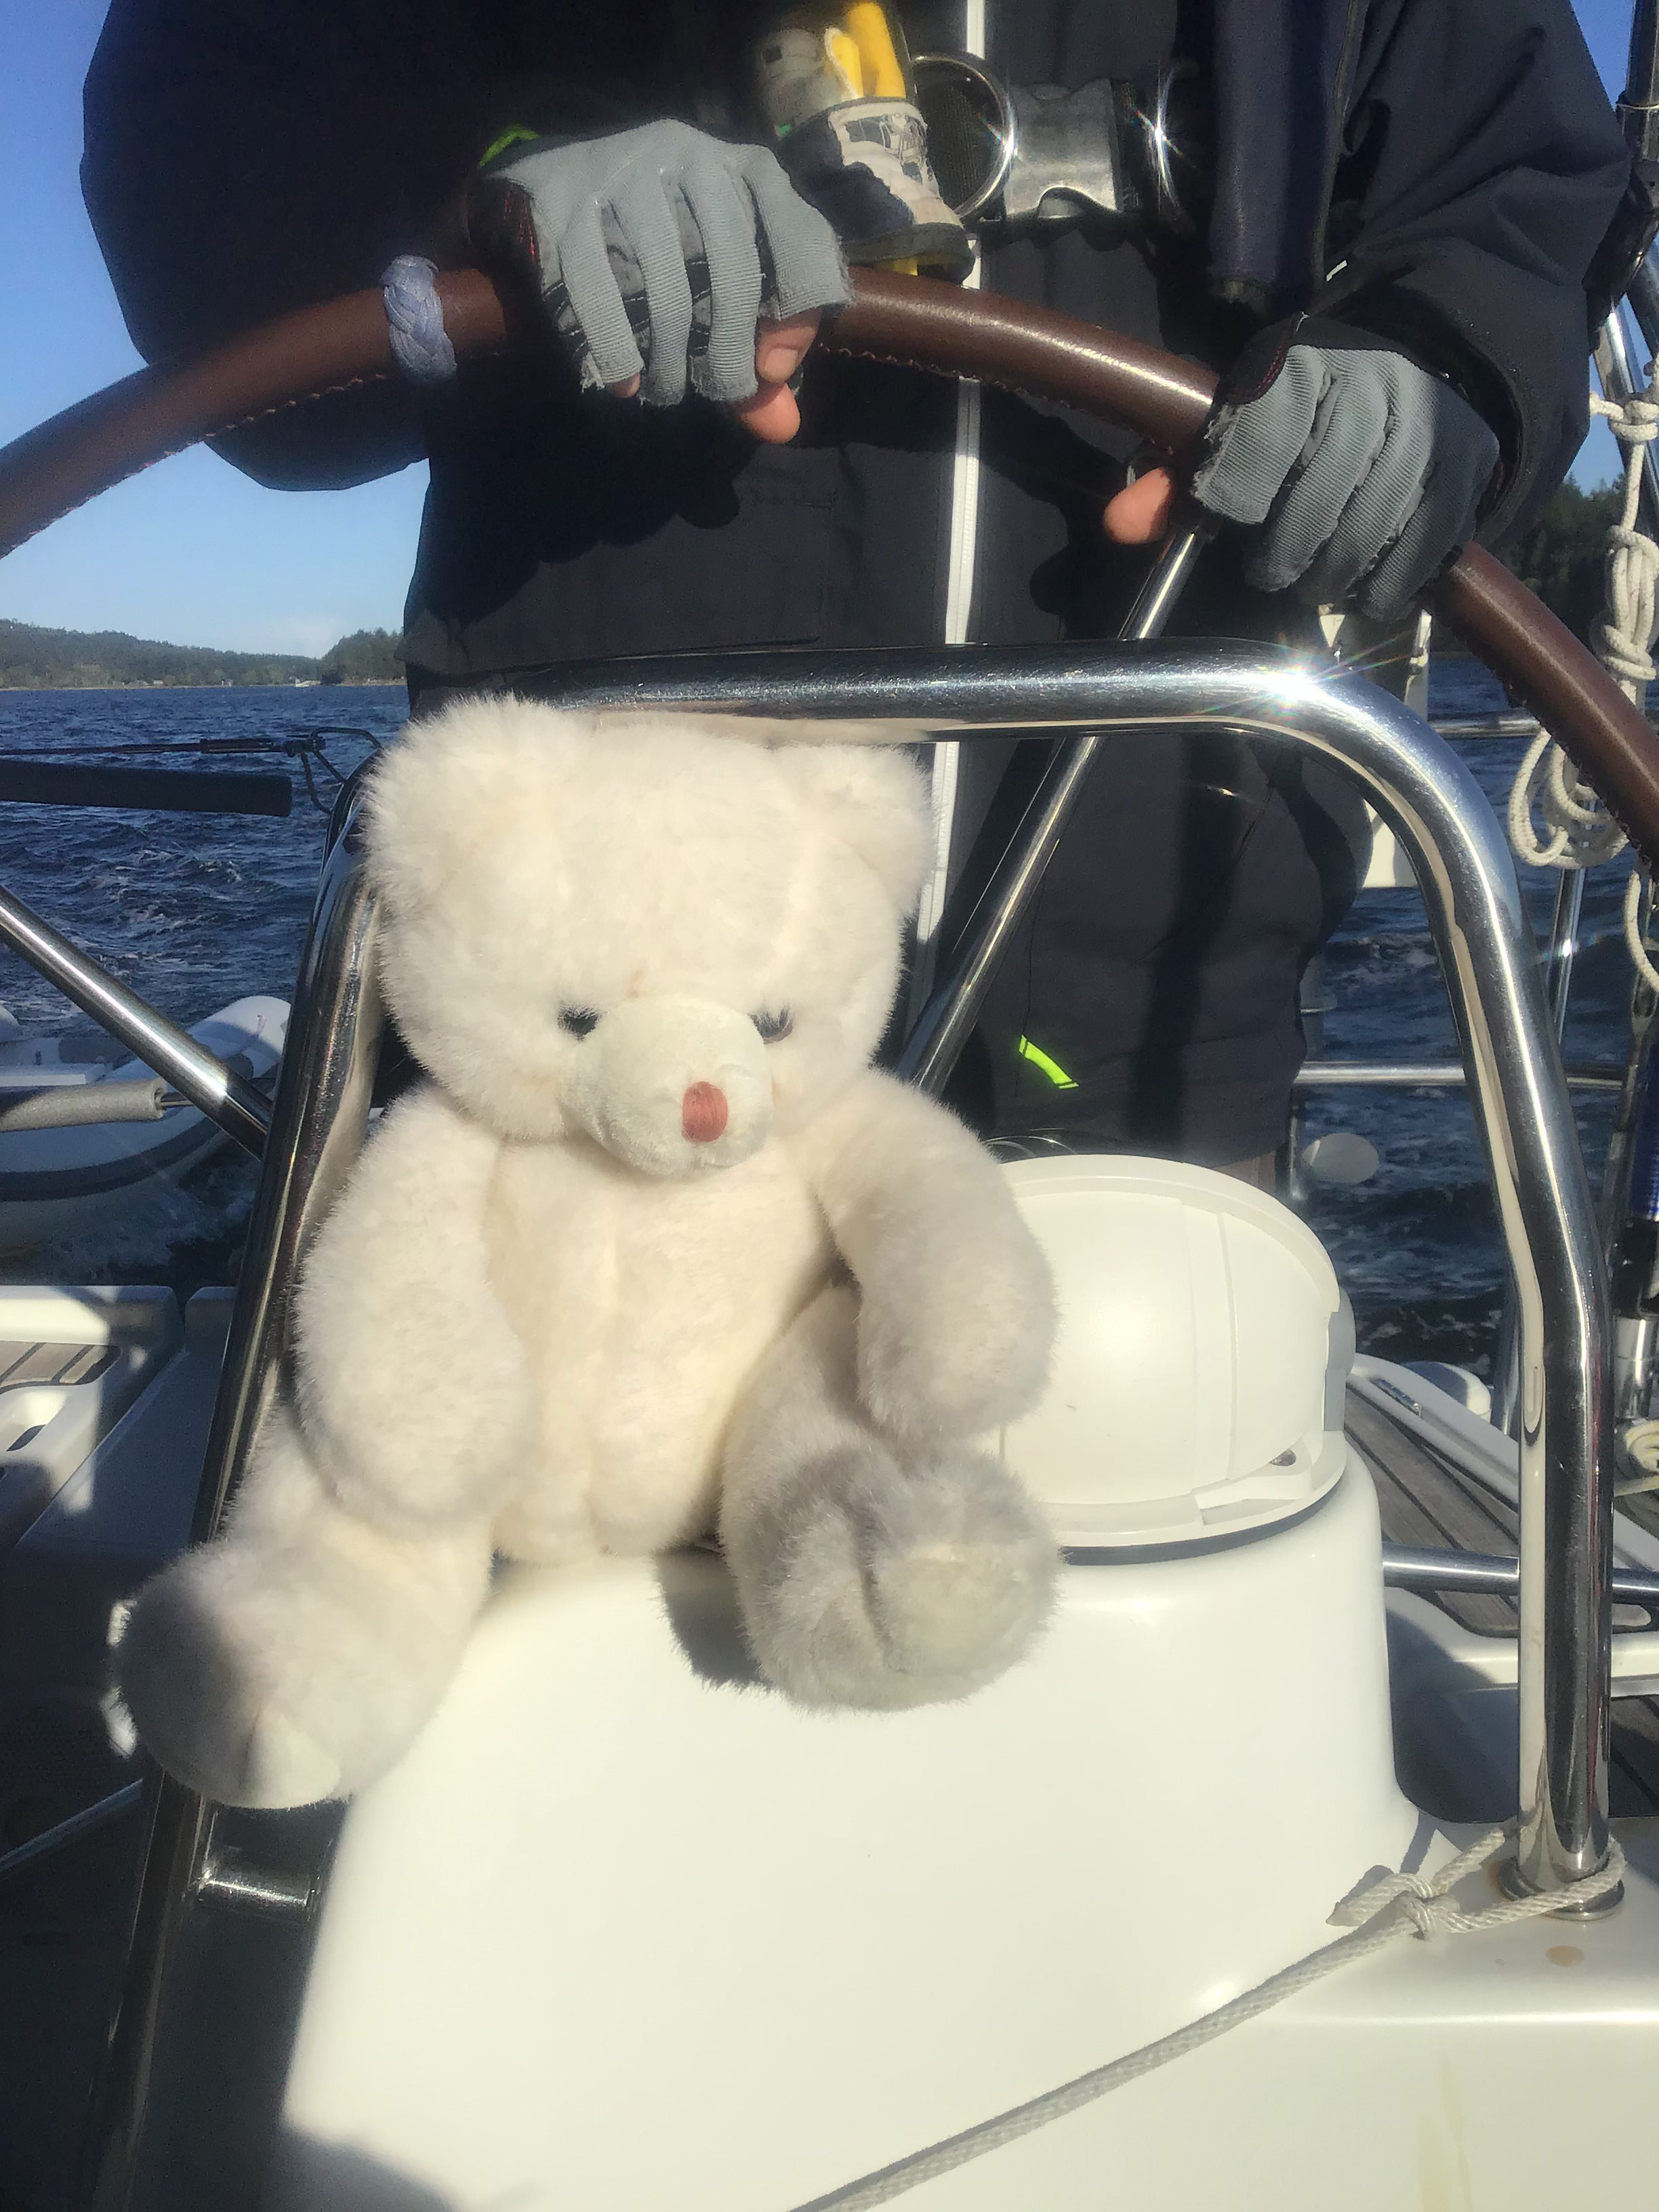 Teddy Bear thinking he's the skipper